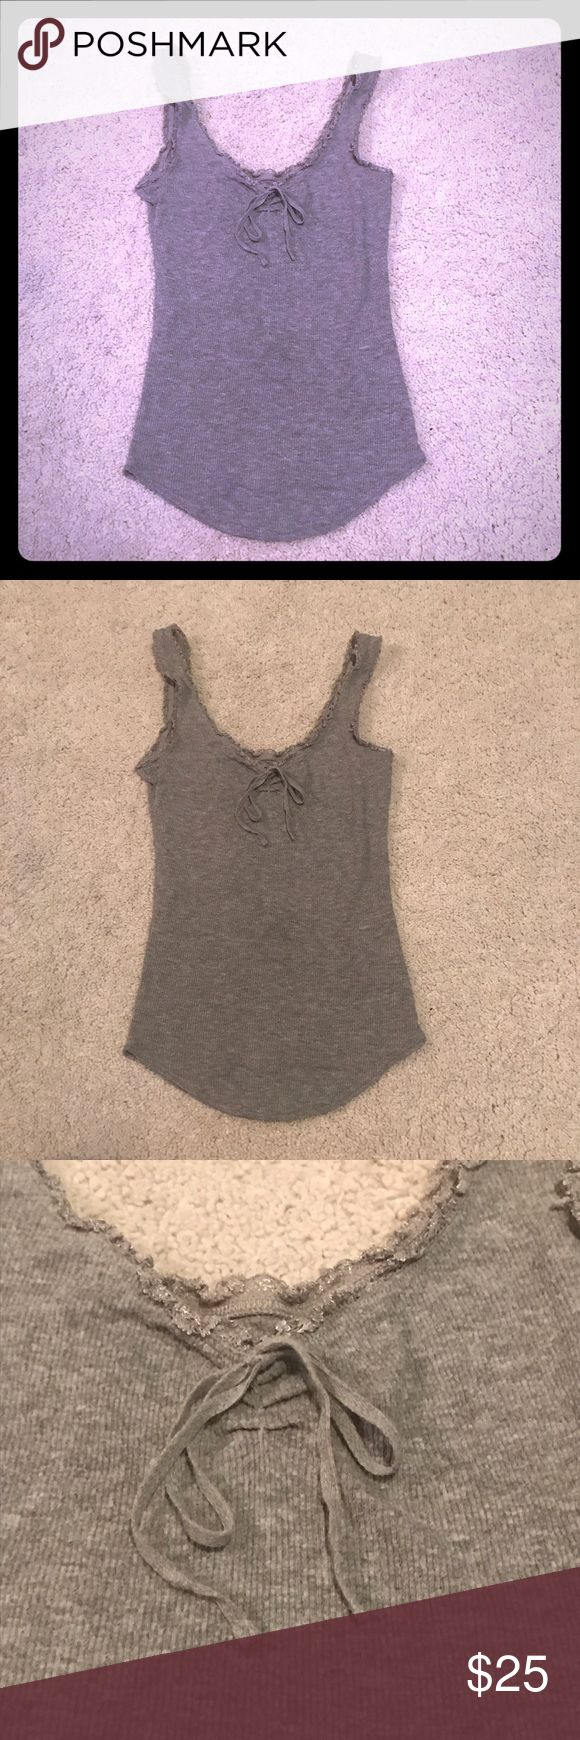 Free People gray ribbed bow tank top Free people gray ribbed decorative bow tie tank top Free People Tops Tank Tops